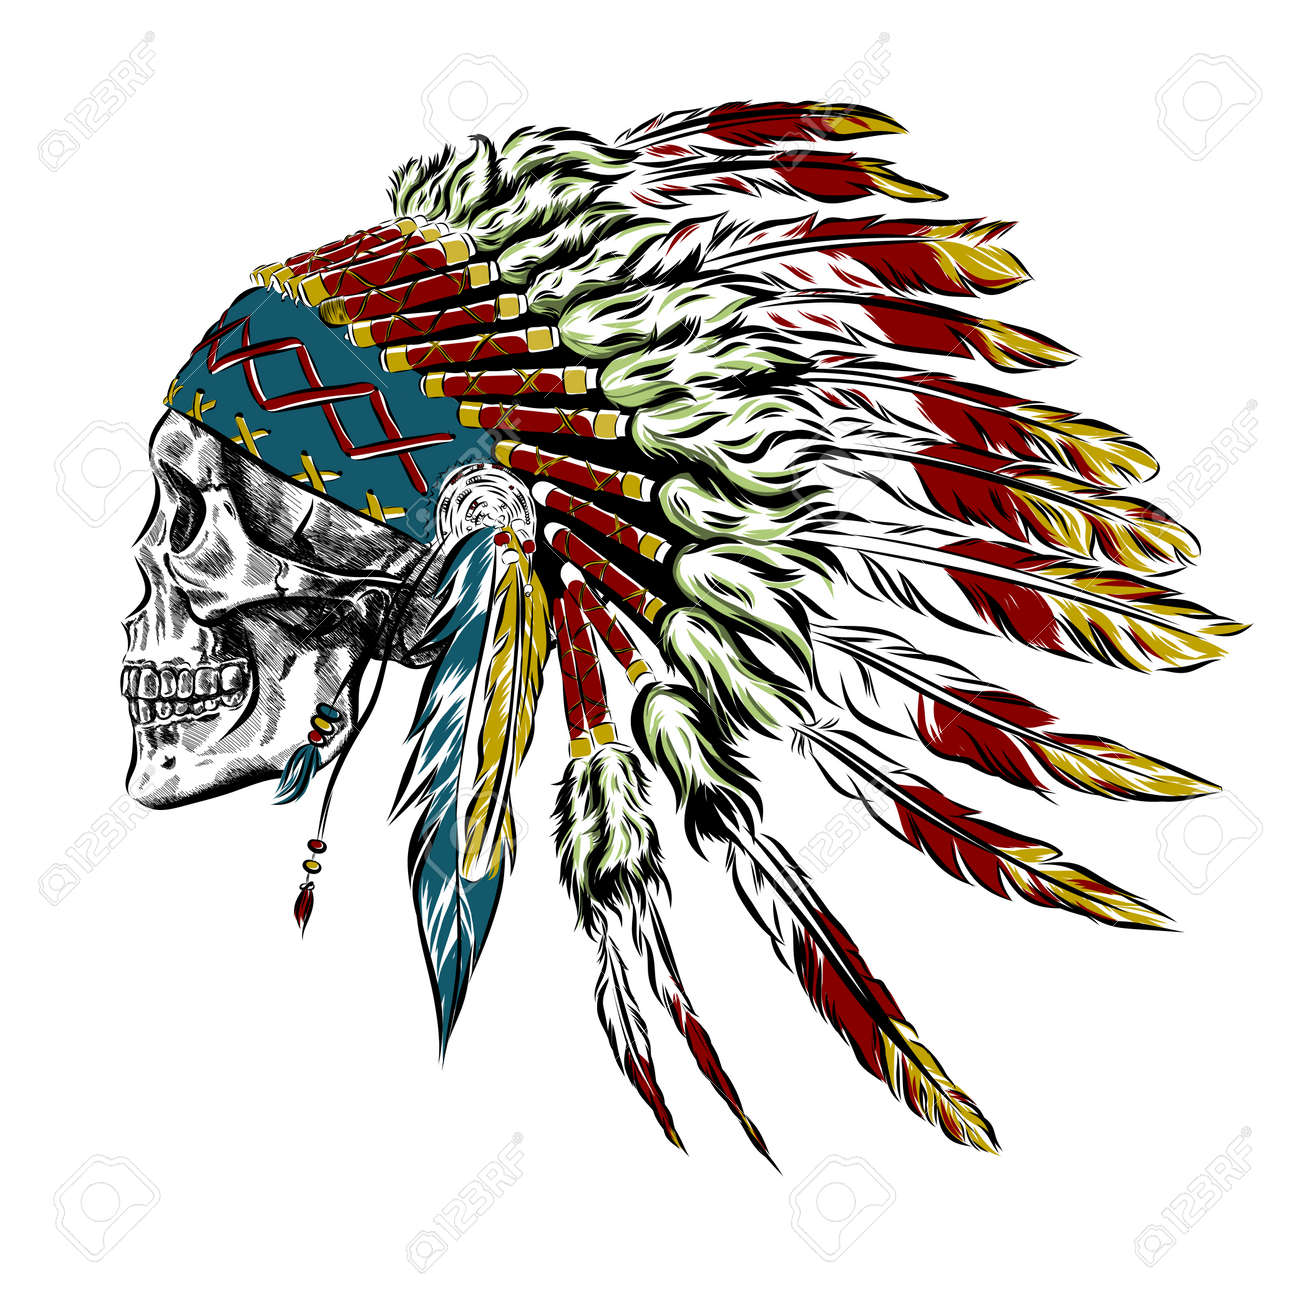 hight resolution of hand drawn native american indian feather headdress with human skull vector illustration eps stock vector